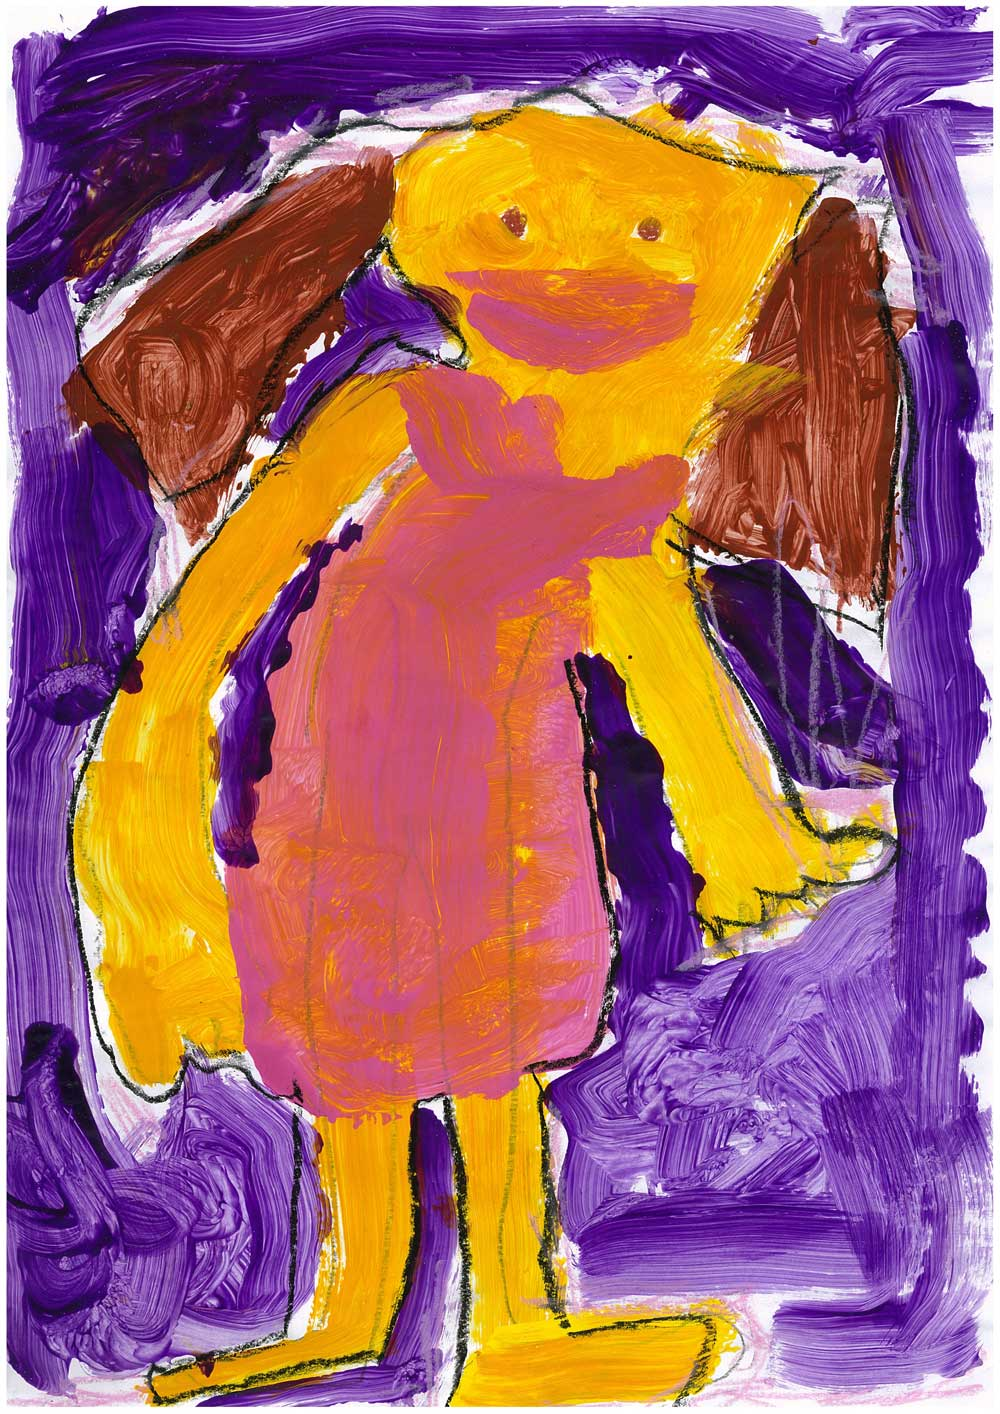 Estella Marrett (age 6), Untitled, 2012, acrylic on paper, 42 x 29.7 cm